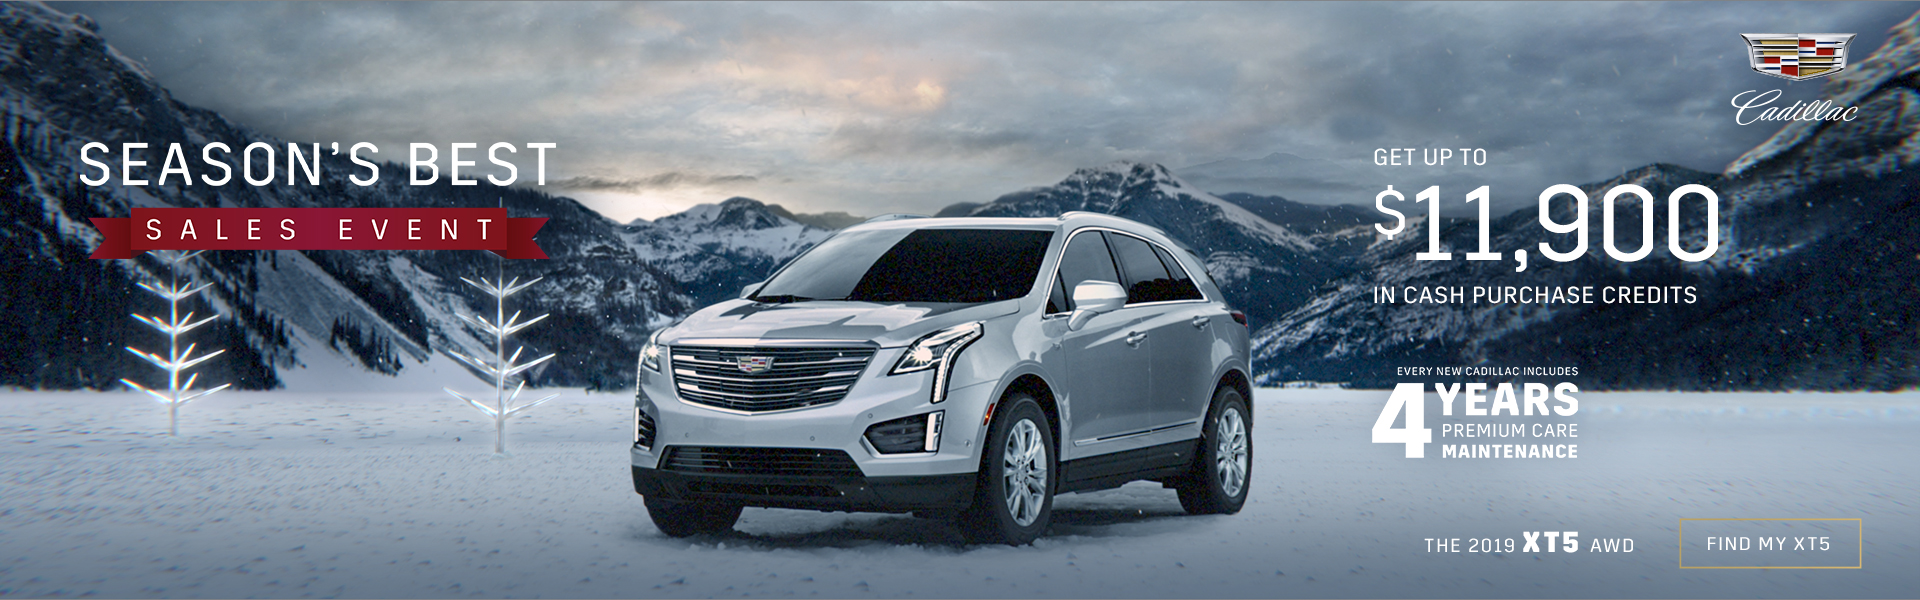 Best Lease Purchase Trucking Companies 2020.New Used Cadillac Dealer Serving Edmonton St Albert